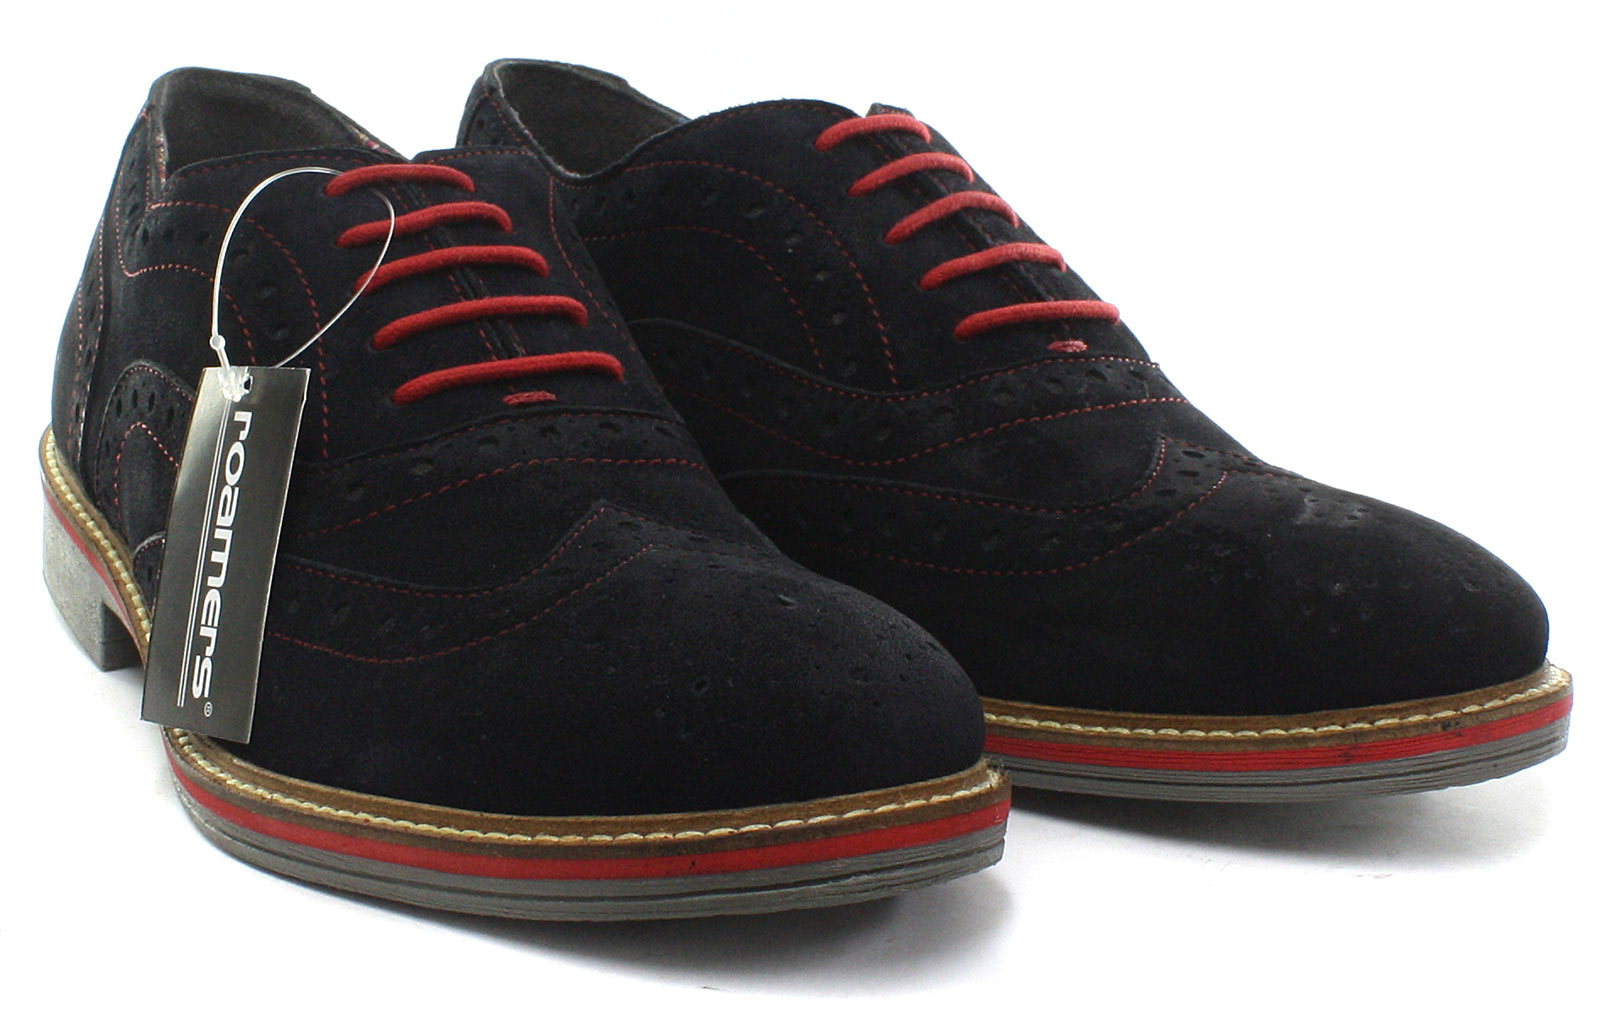 Oxford Taille Eye 5 6 Roamers Chaussures 5 Brogue Navy 39 Pour Homme M480cs eu xZnzH